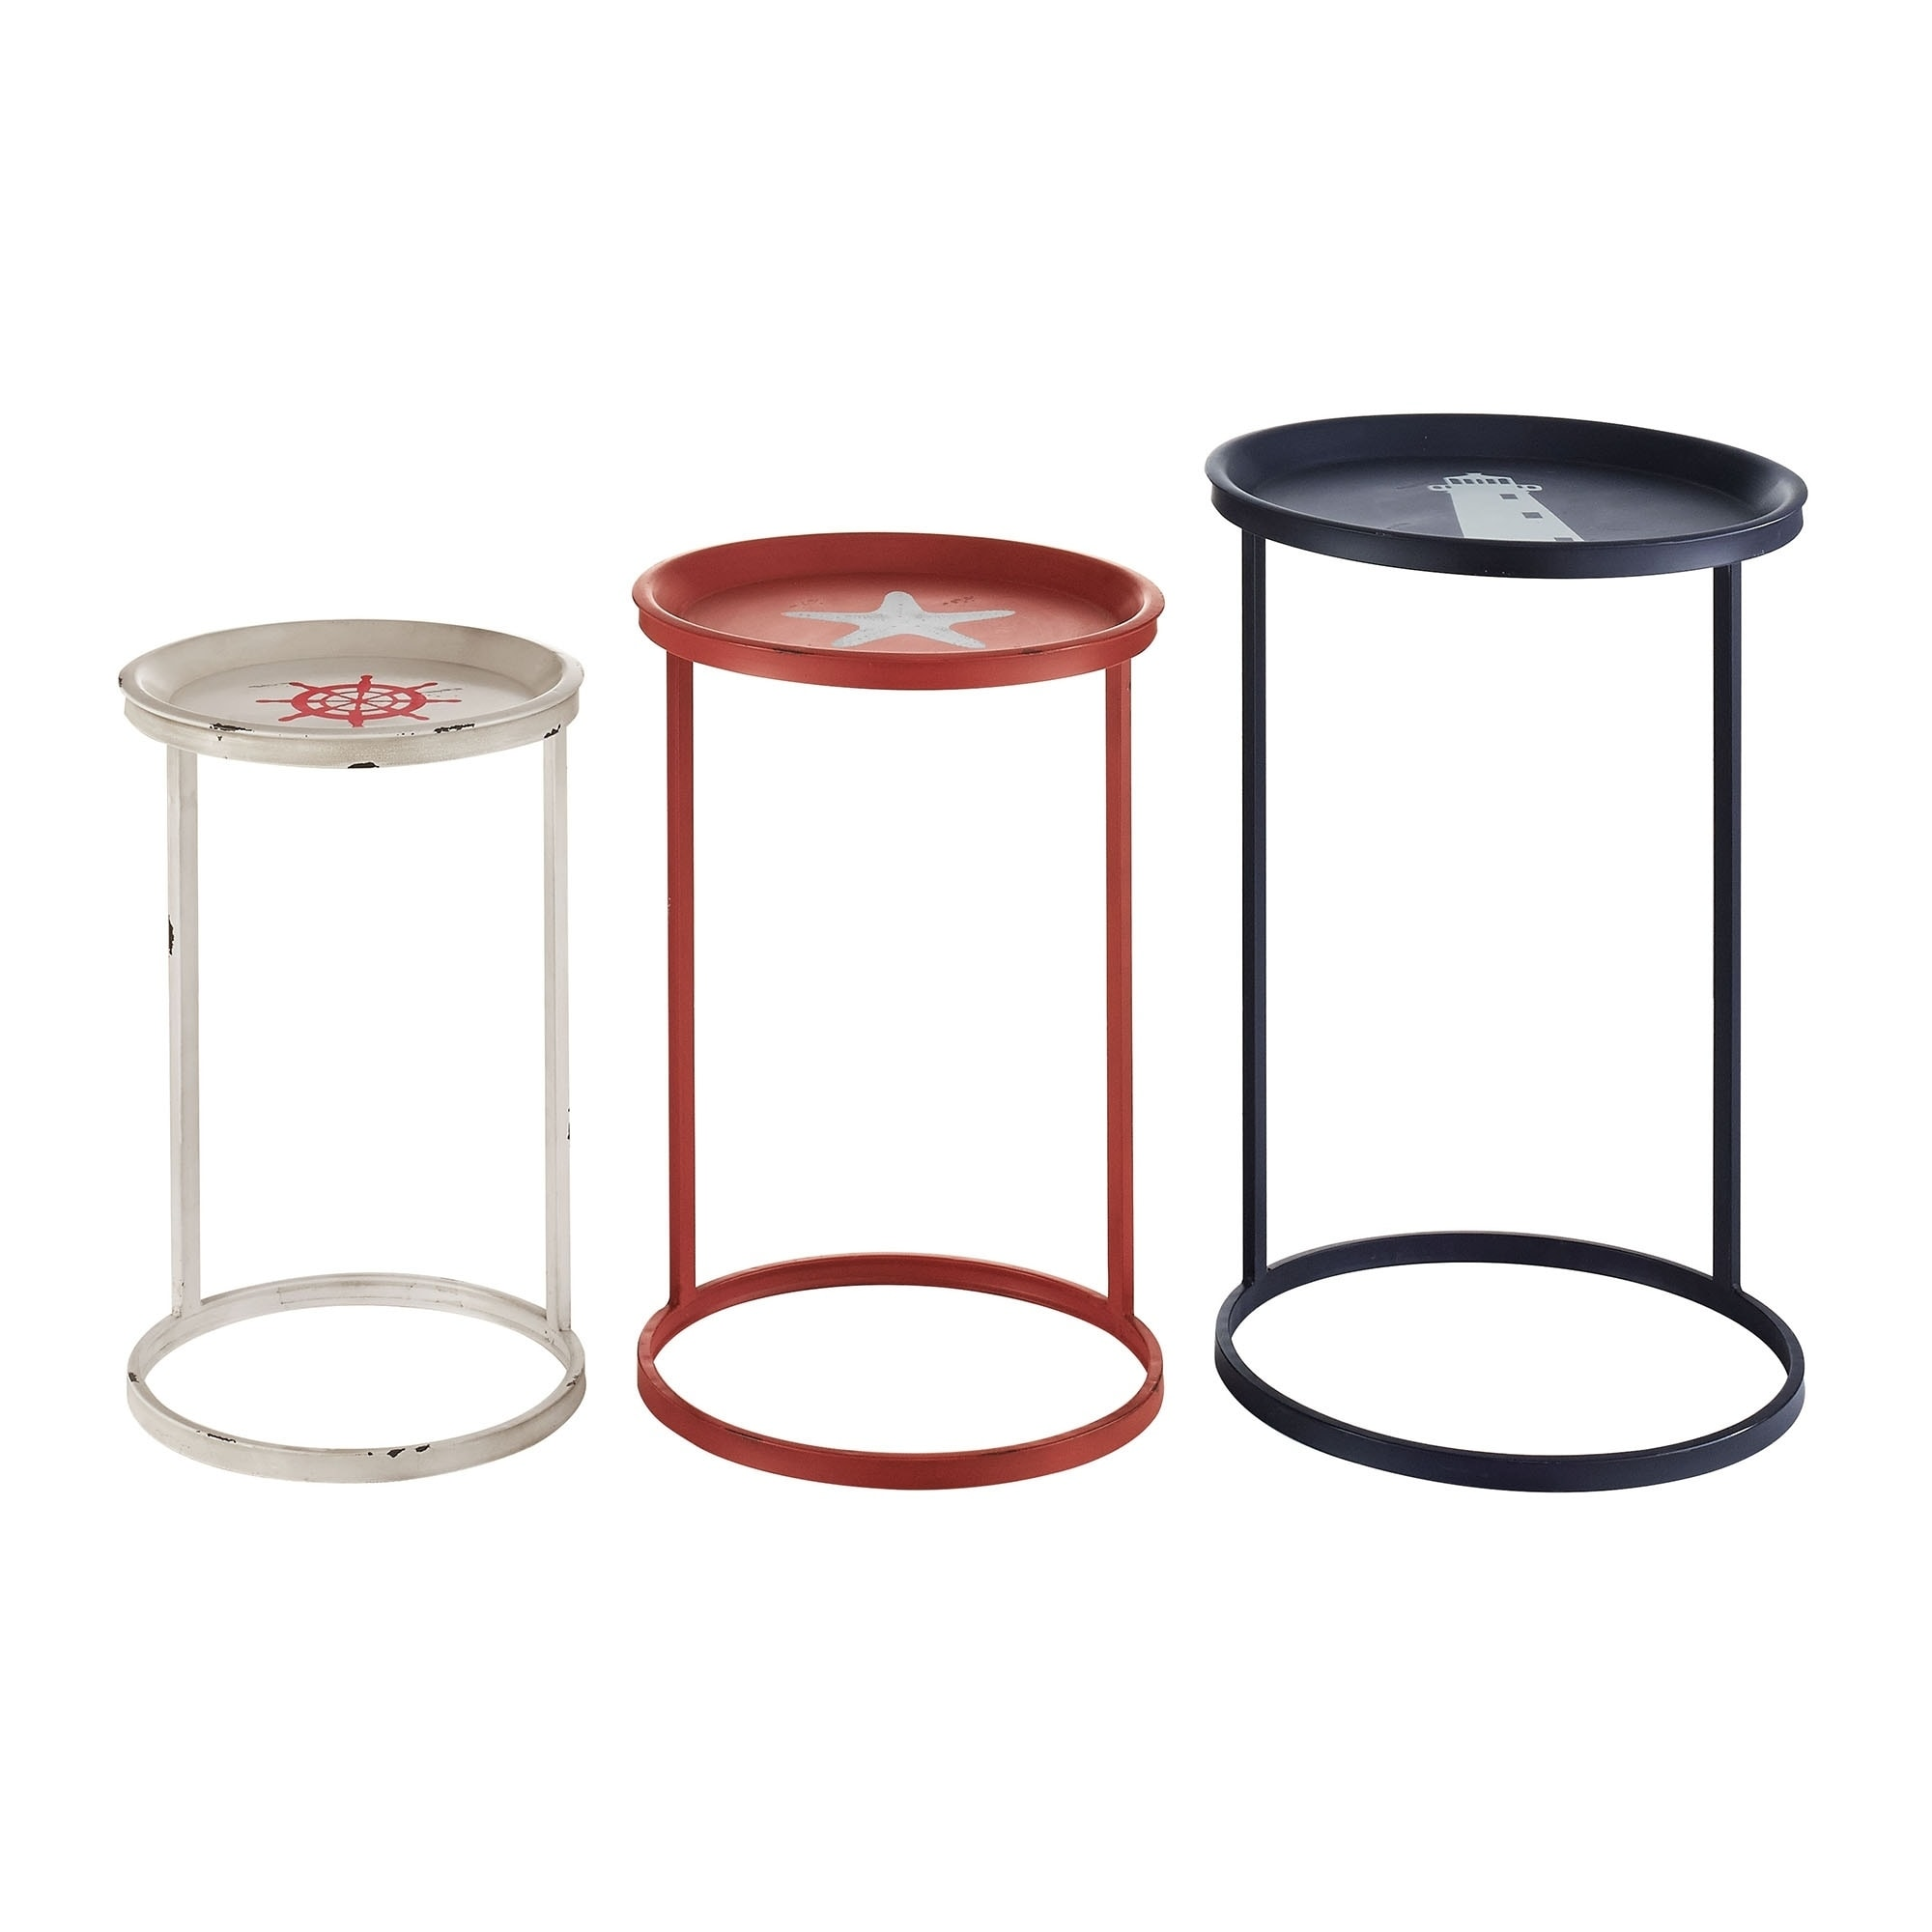 Nautical Themed Nesting Table with Circular Base, Multicolor